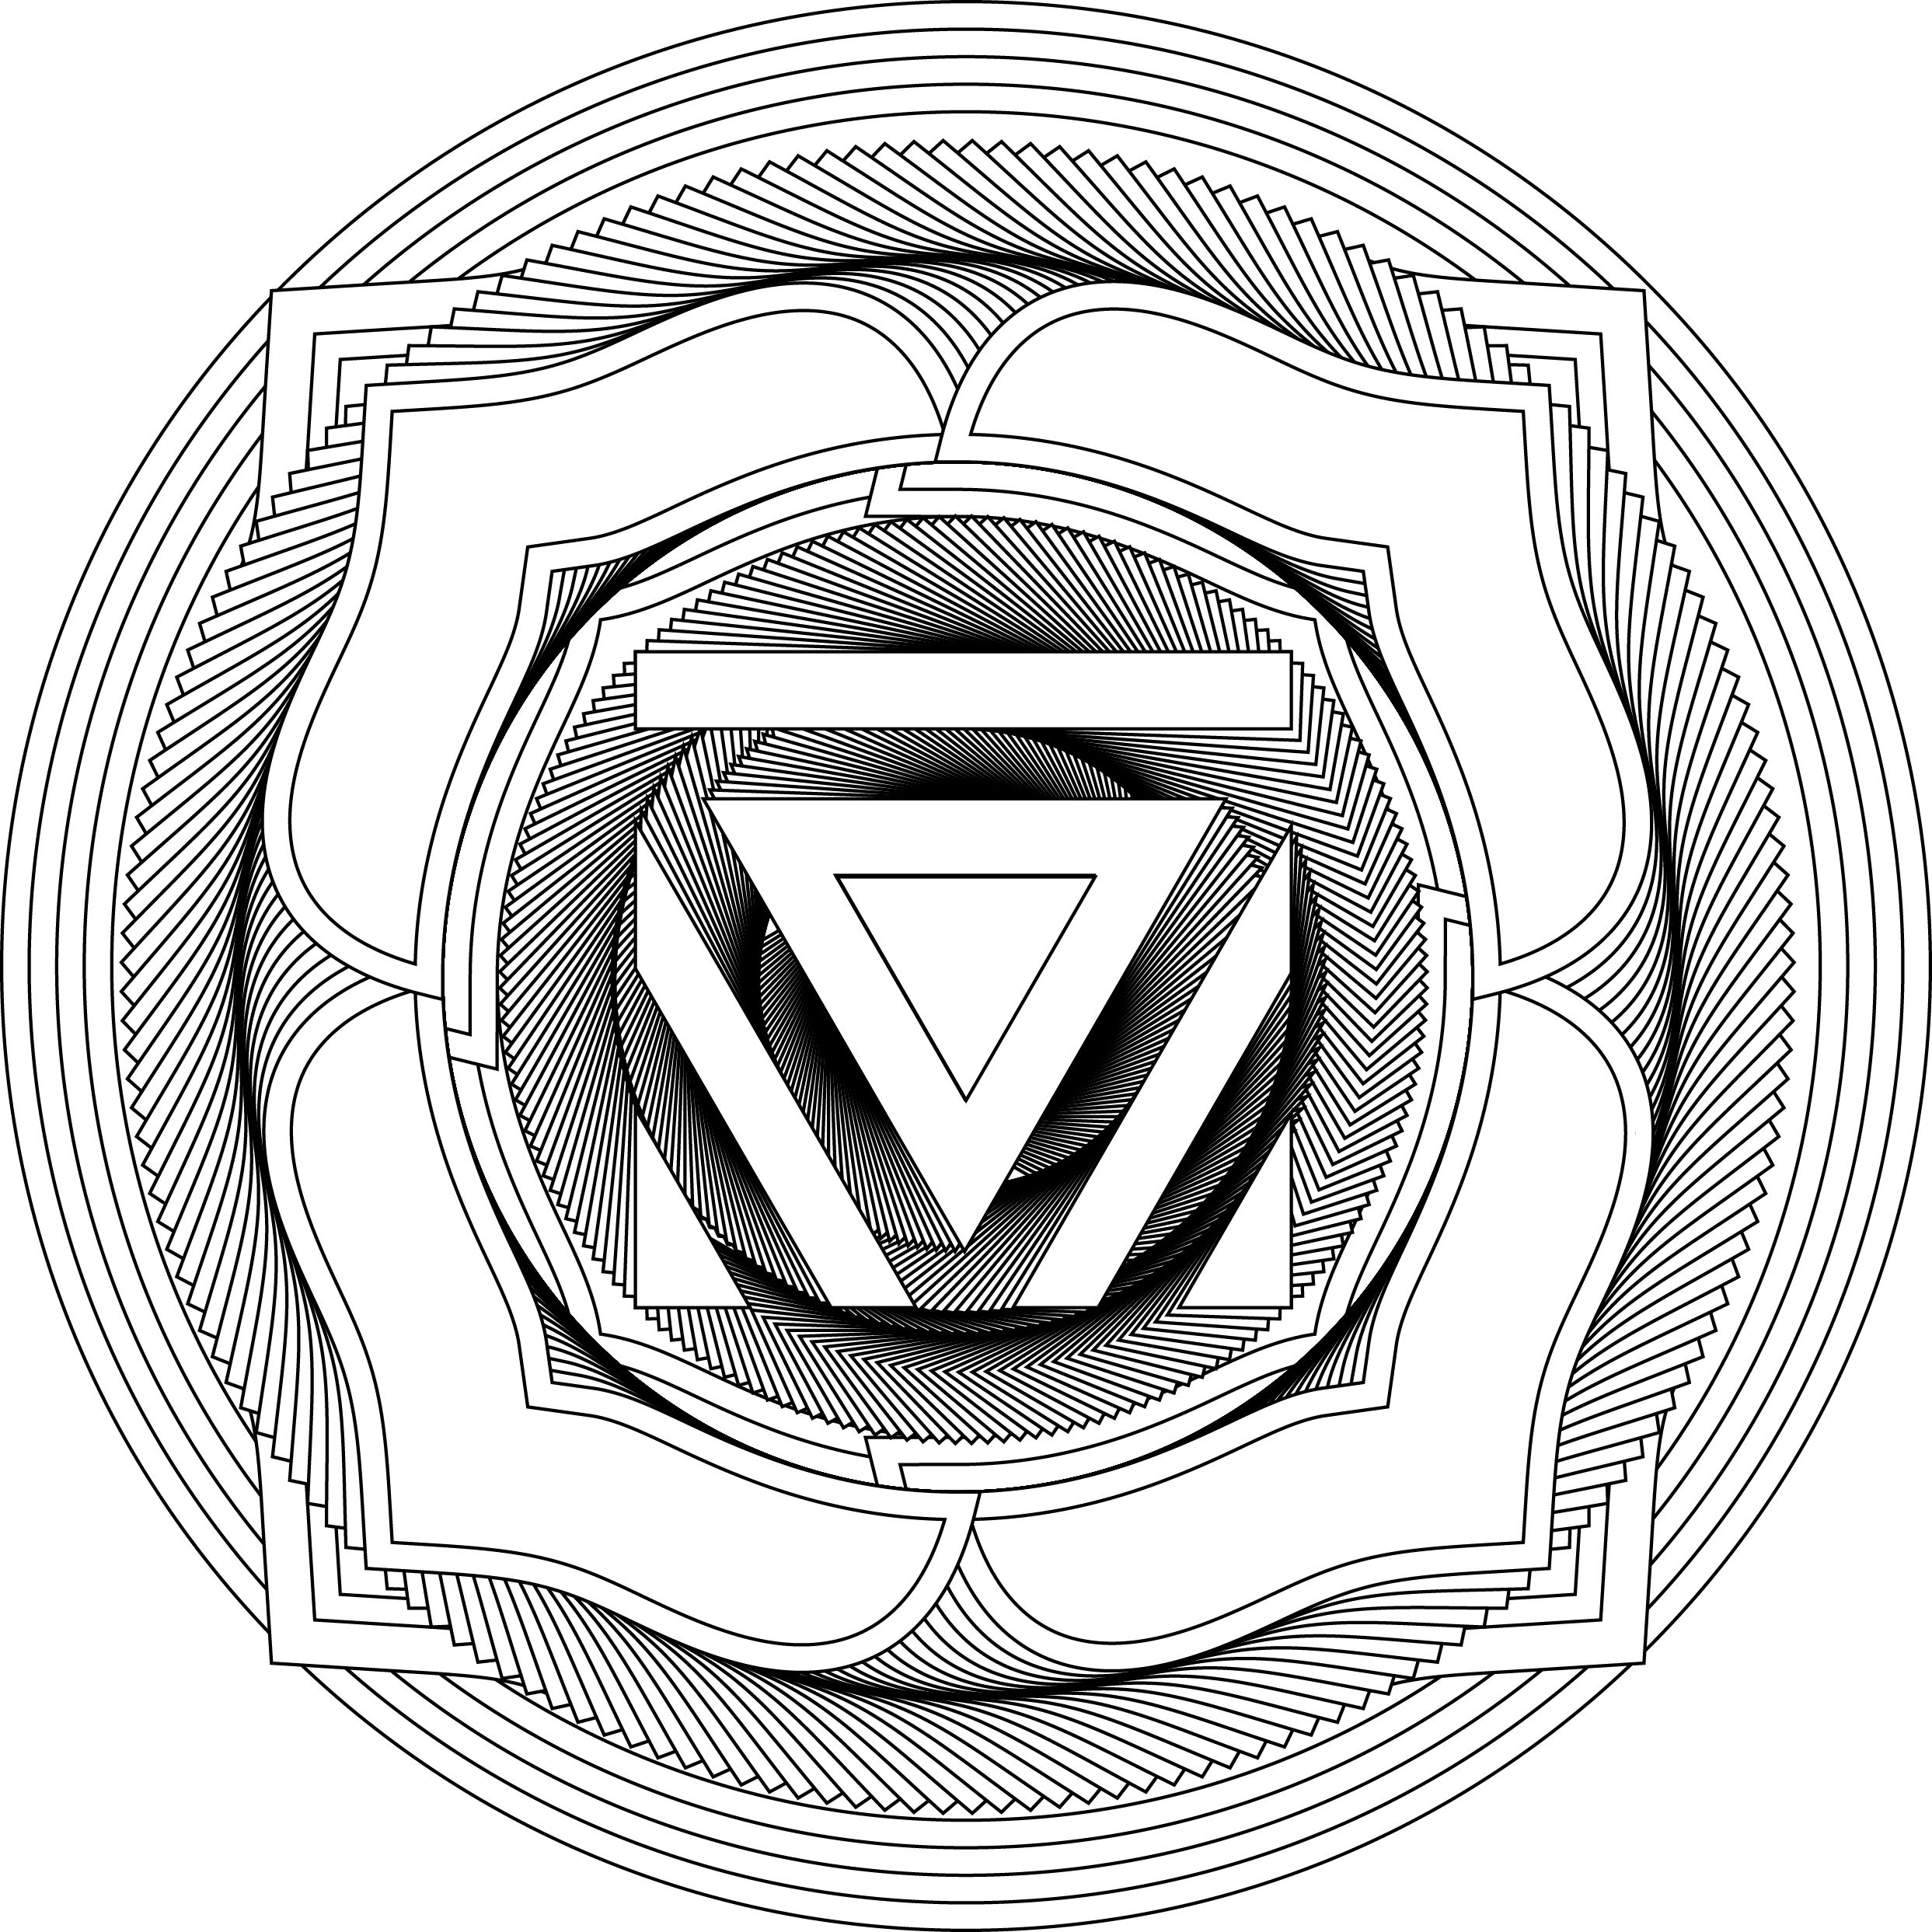 Muladhara; the root chakra (With images) | Coloring pages ...